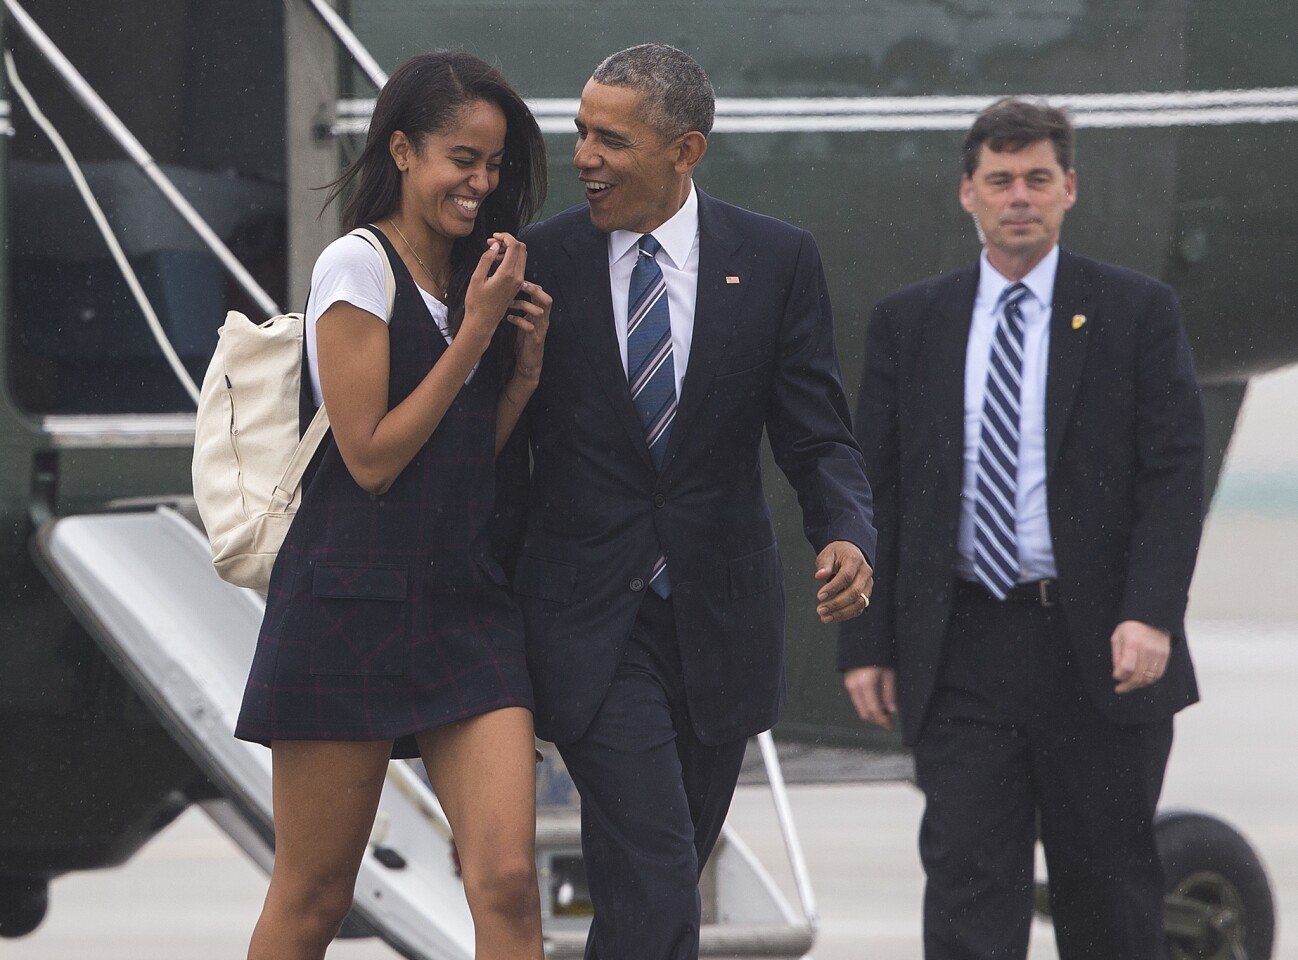 President Obama and daughter Malia walk across the tarmac to board Air Force One at LAX.